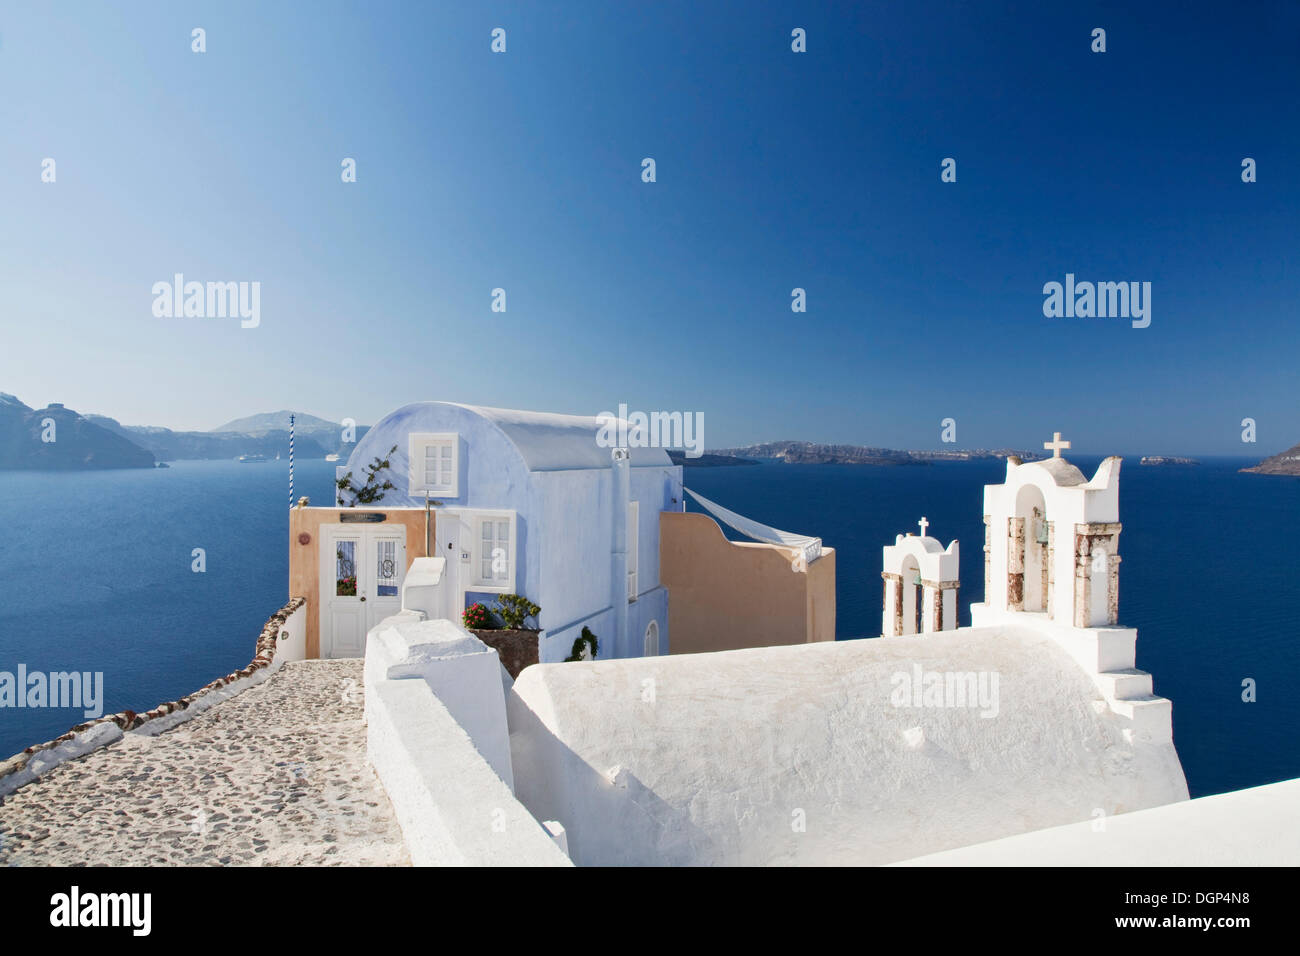 Accommodation in Greece 5